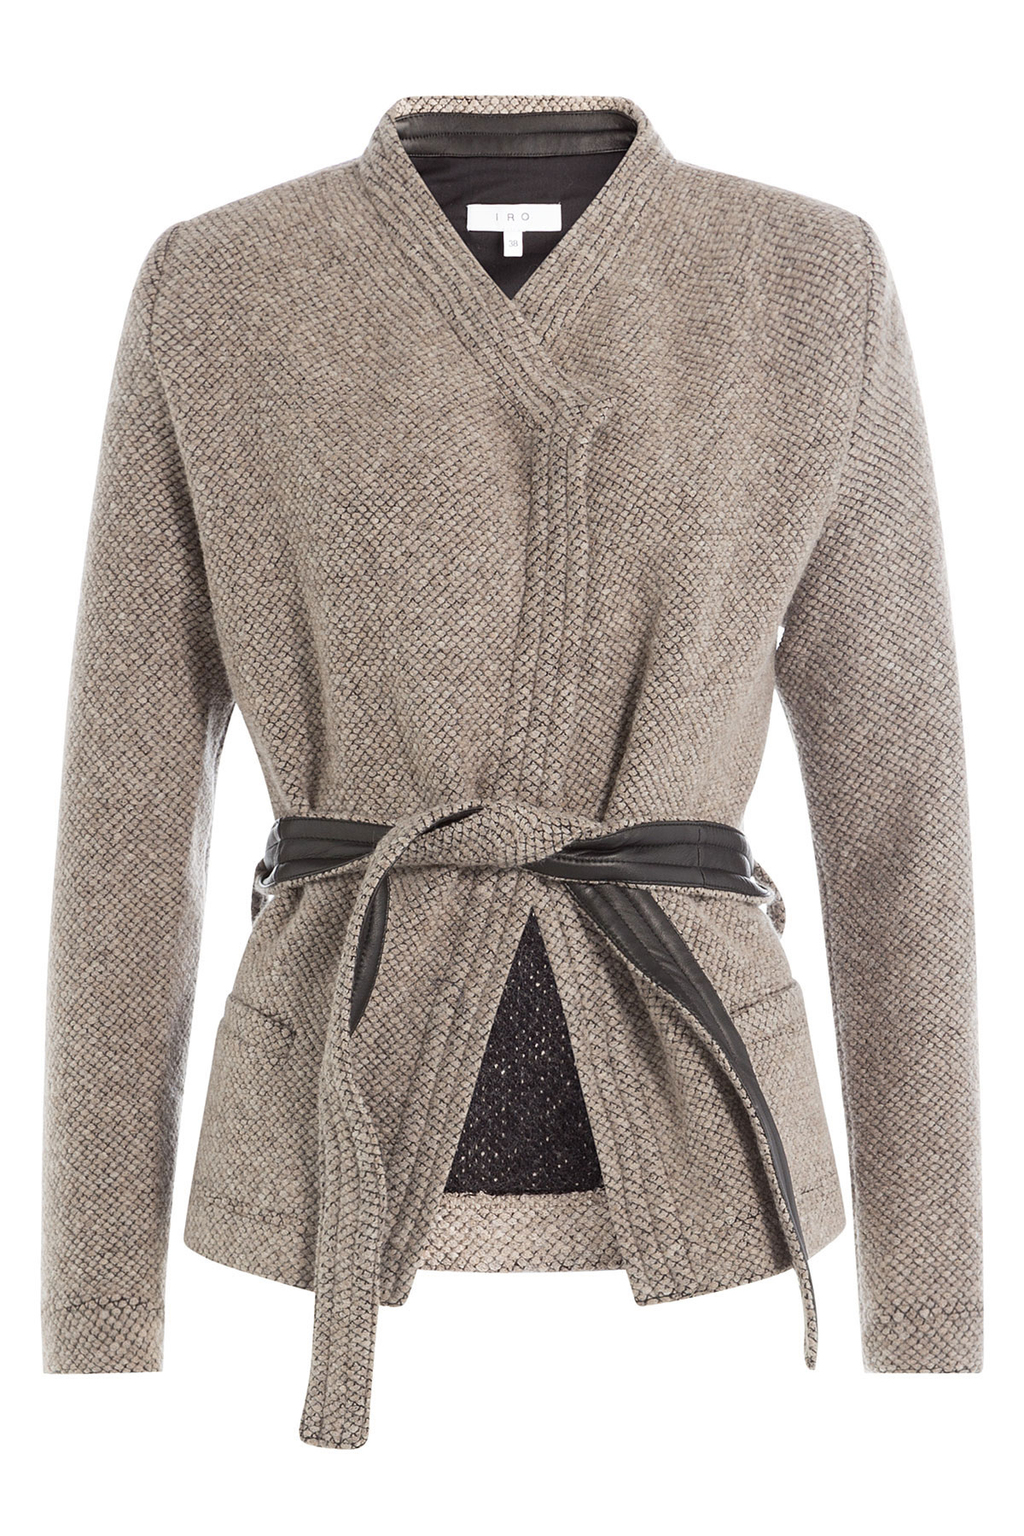 Belted Tweed Jacket Grey - pattern: plain; collar: round collar/collarless; style: boxy; predominant colour: mid grey; occasions: casual; length: standard; fit: straight cut (boxy); fibres: wool - mix; waist detail: belted waist/tie at waist/drawstring; sleeve length: long sleeve; sleeve style: standard; collar break: medium; pattern type: fabric; texture group: tweed - light/midweight; season: a/w 2016